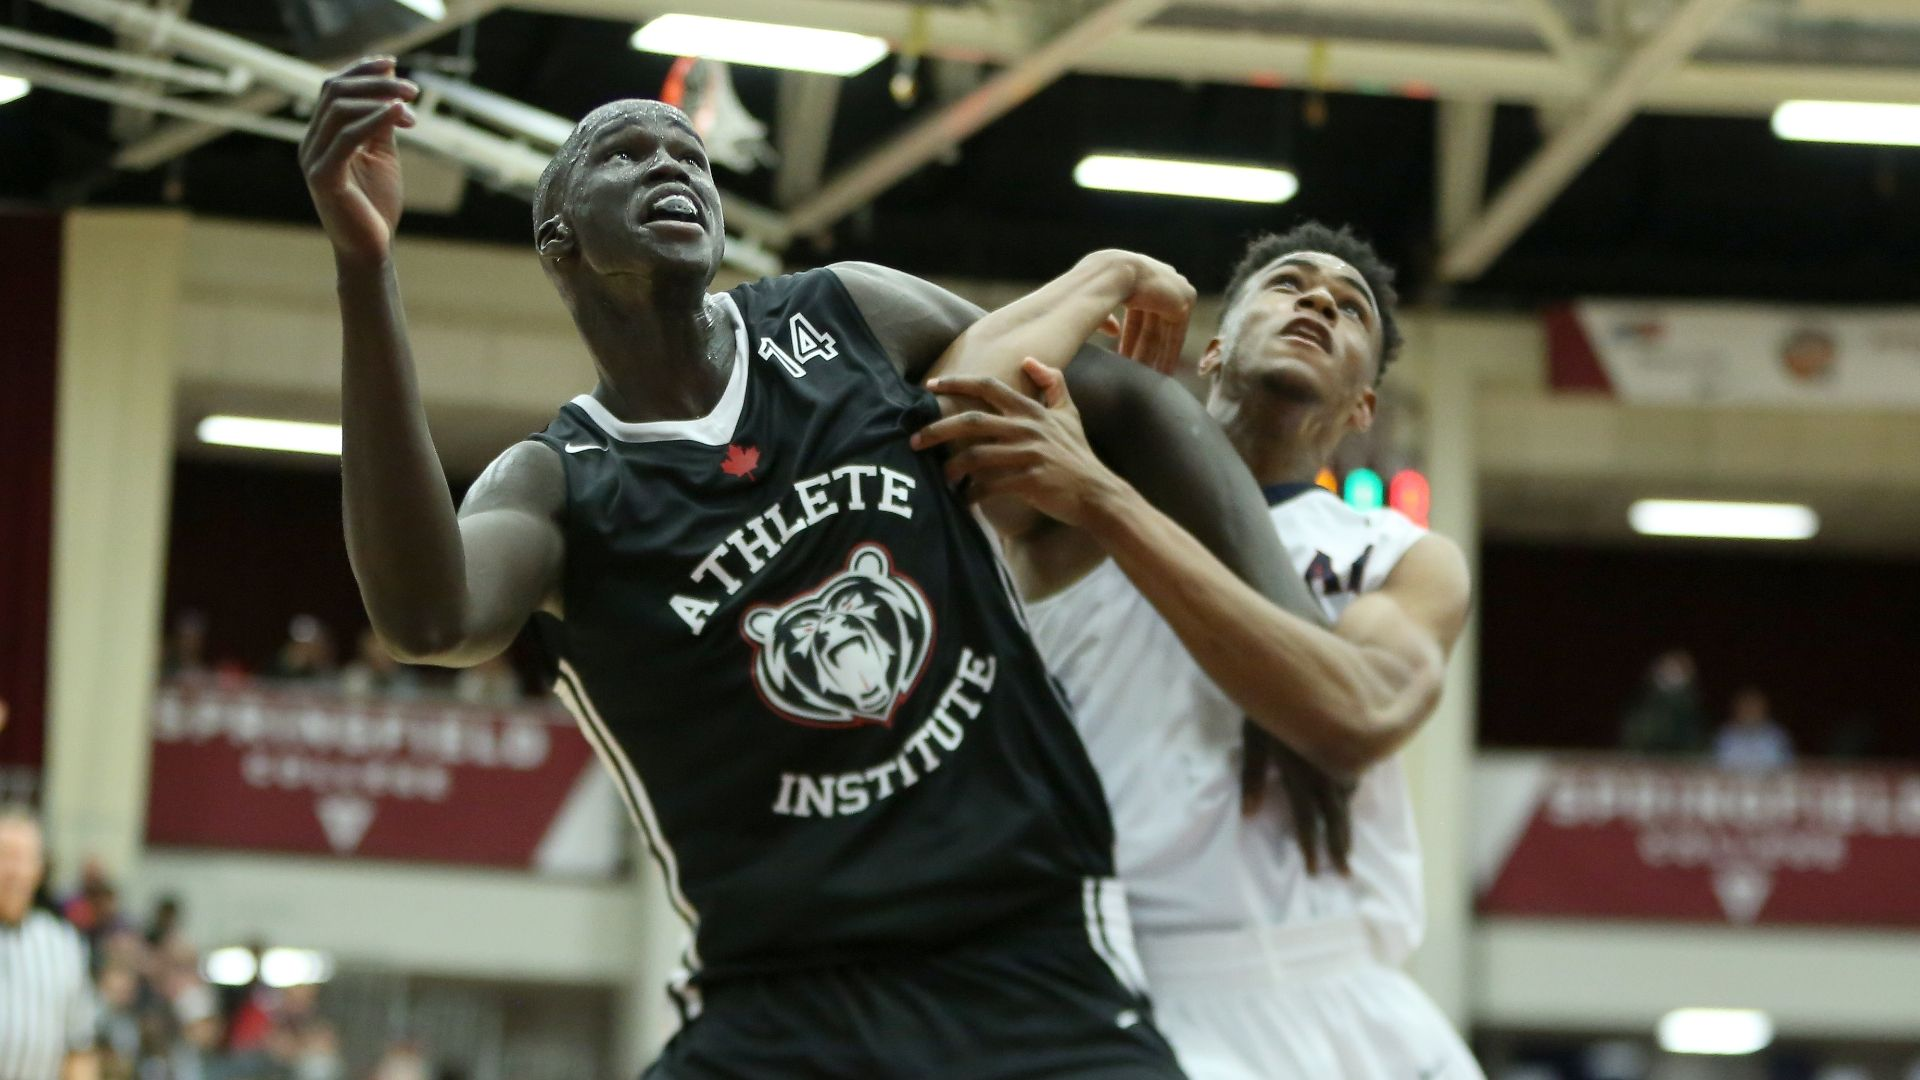 Eligibility a concern for Thon Maker's NBA draft hopes?